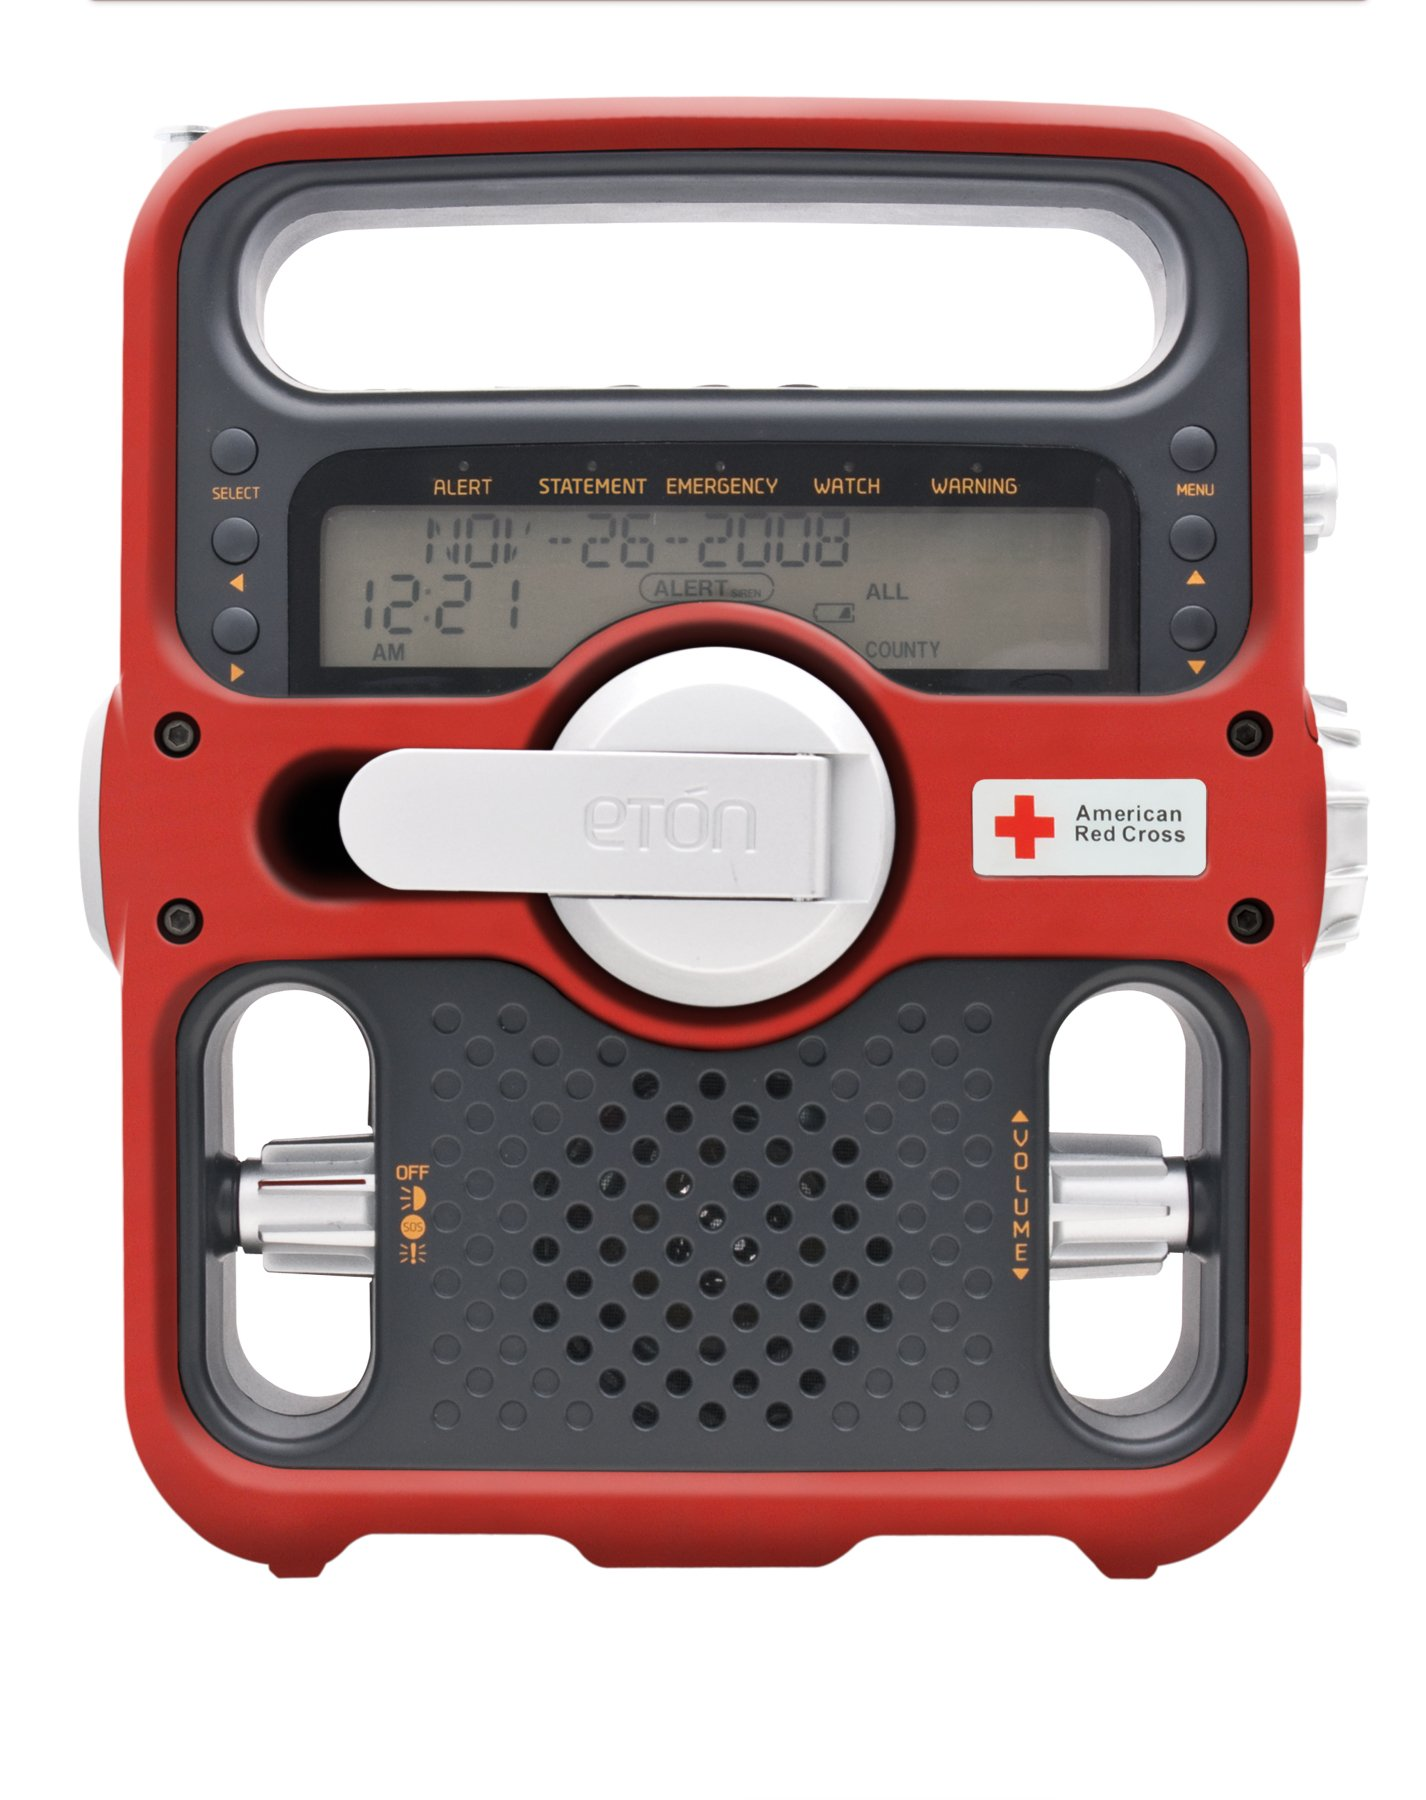 Eton American Red Cross ARCFR600R Solarlink Digital AM/FM/SW/NOAA S.A.M.E. Weather Radio with Flashlight, Siren, Solar and CellPhone Charger (Red) (Discontinued by Manufacturer) by Eton